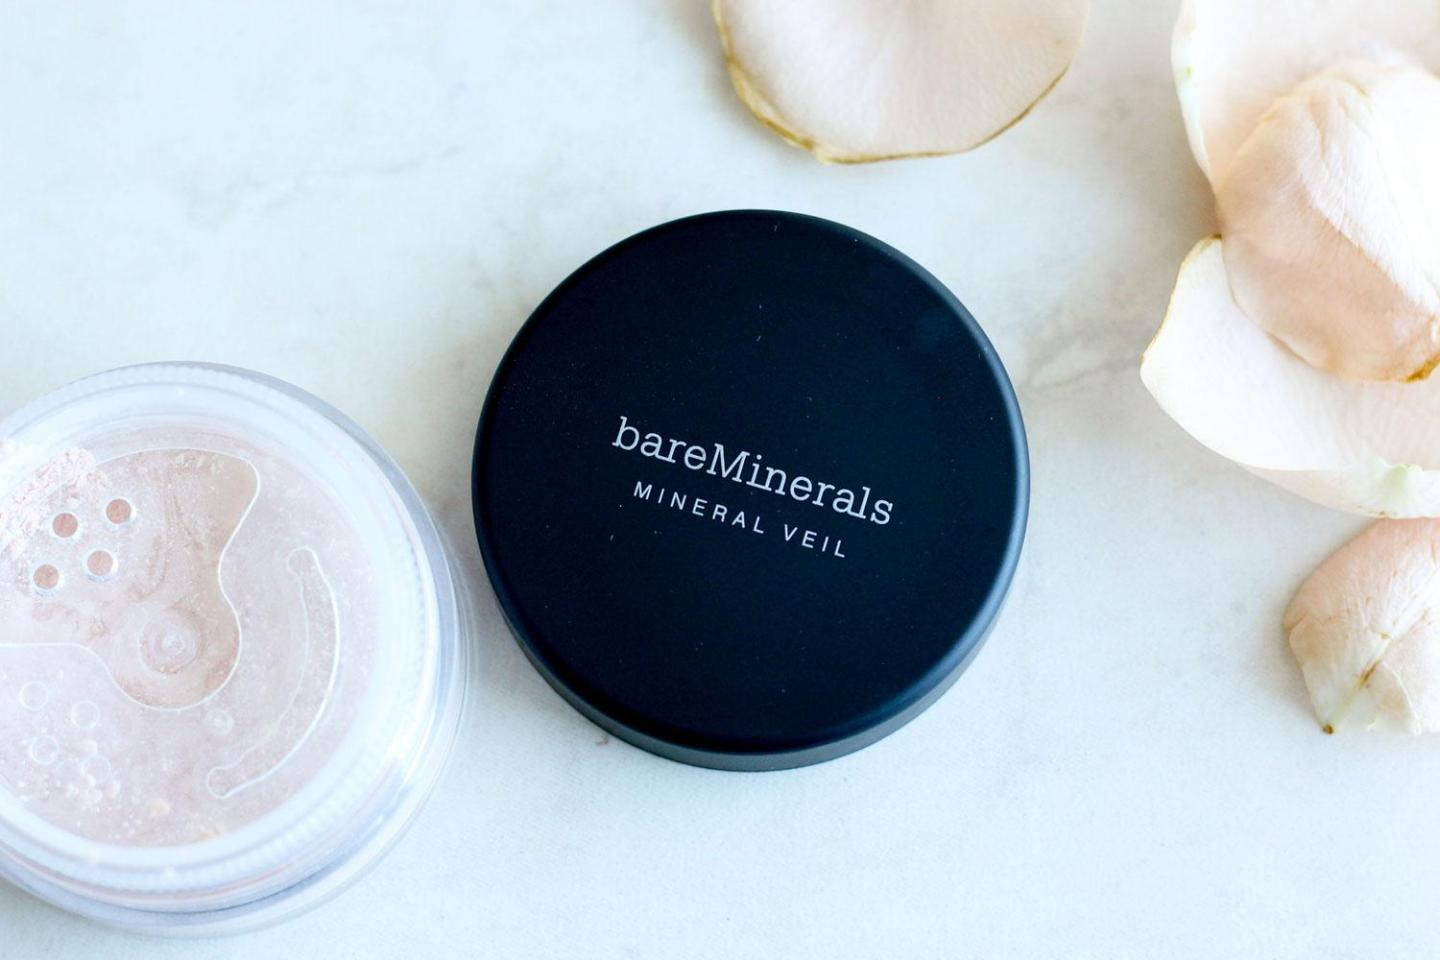 BareMinerals Mineral Veil Powder Review